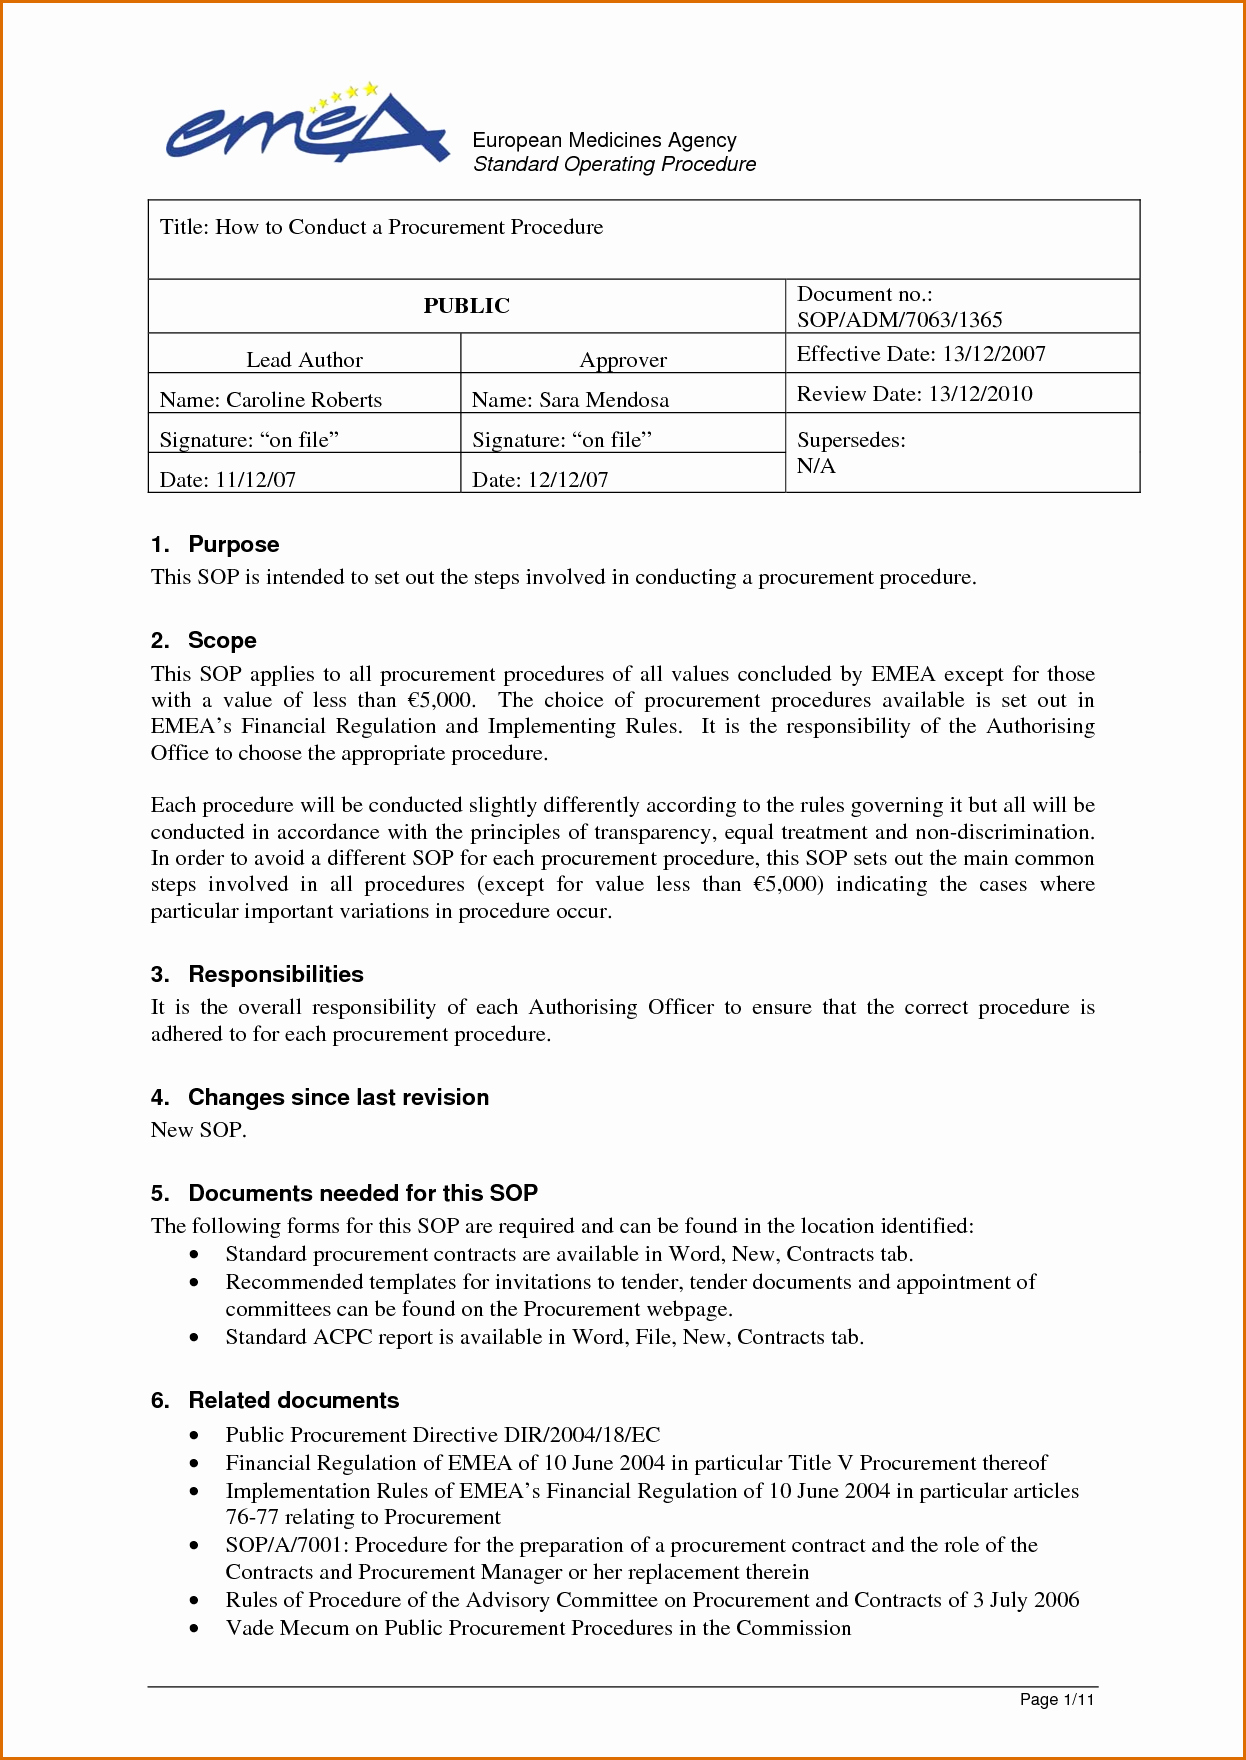 Procedure Manual Template Word Awesome 11 Standard Operating Procedure Template Word